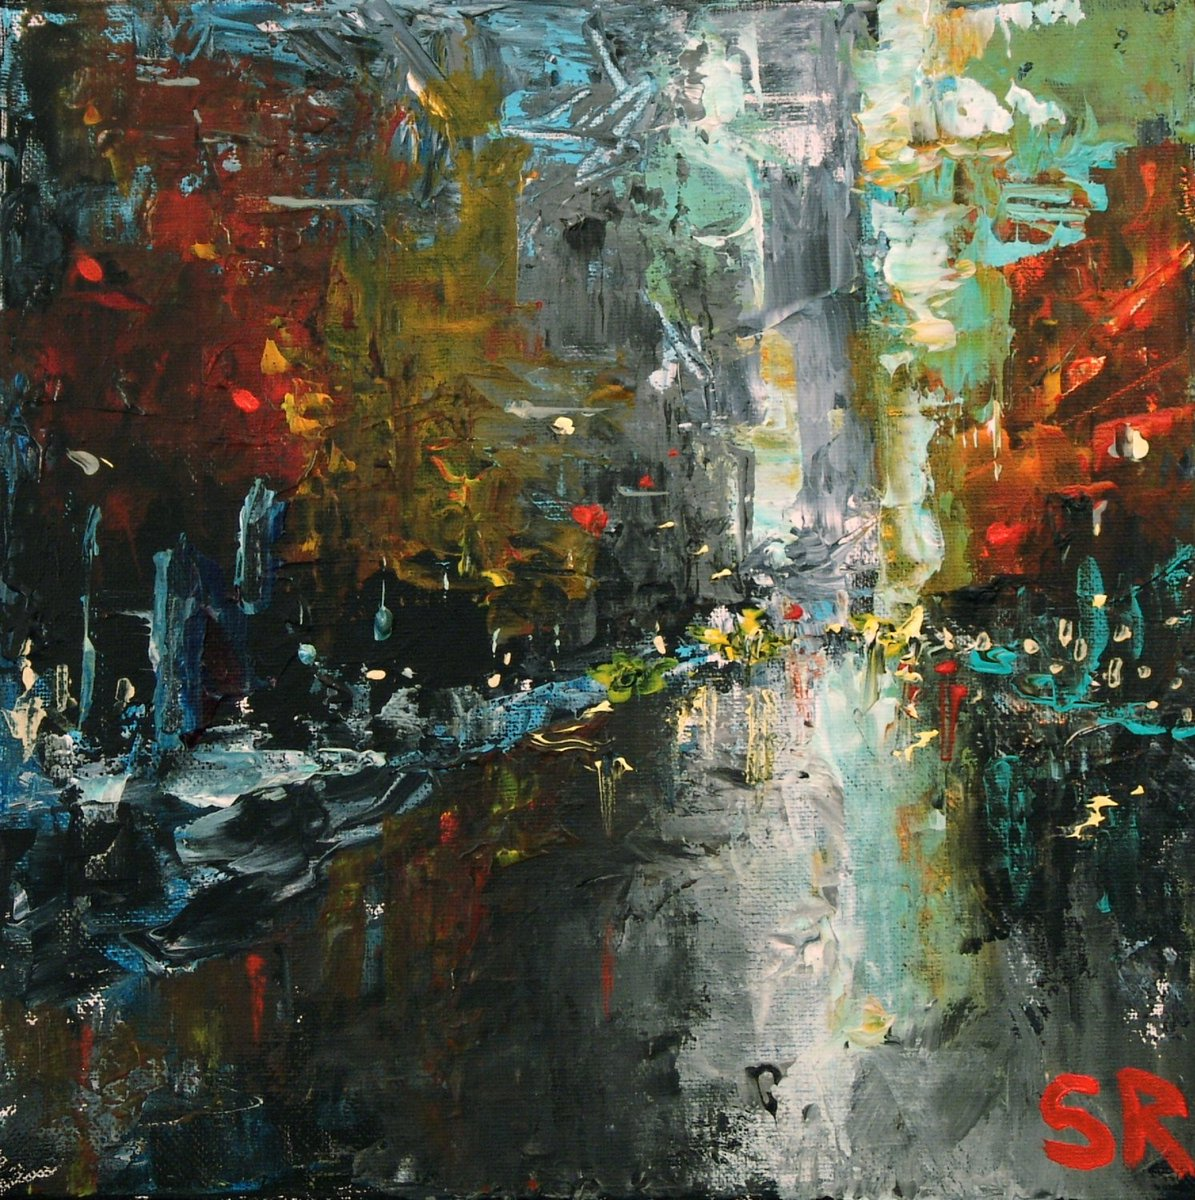 Sam Raines on Twitter   Large Art  Large Painting  36 x 36  NIGHT     Sam Raines on Twitter   Large Art  Large Painting  36 x 36  NIGHT CITY  New  York Cityscape  Abstract Painting  NYC Painting  Cityscape Painting